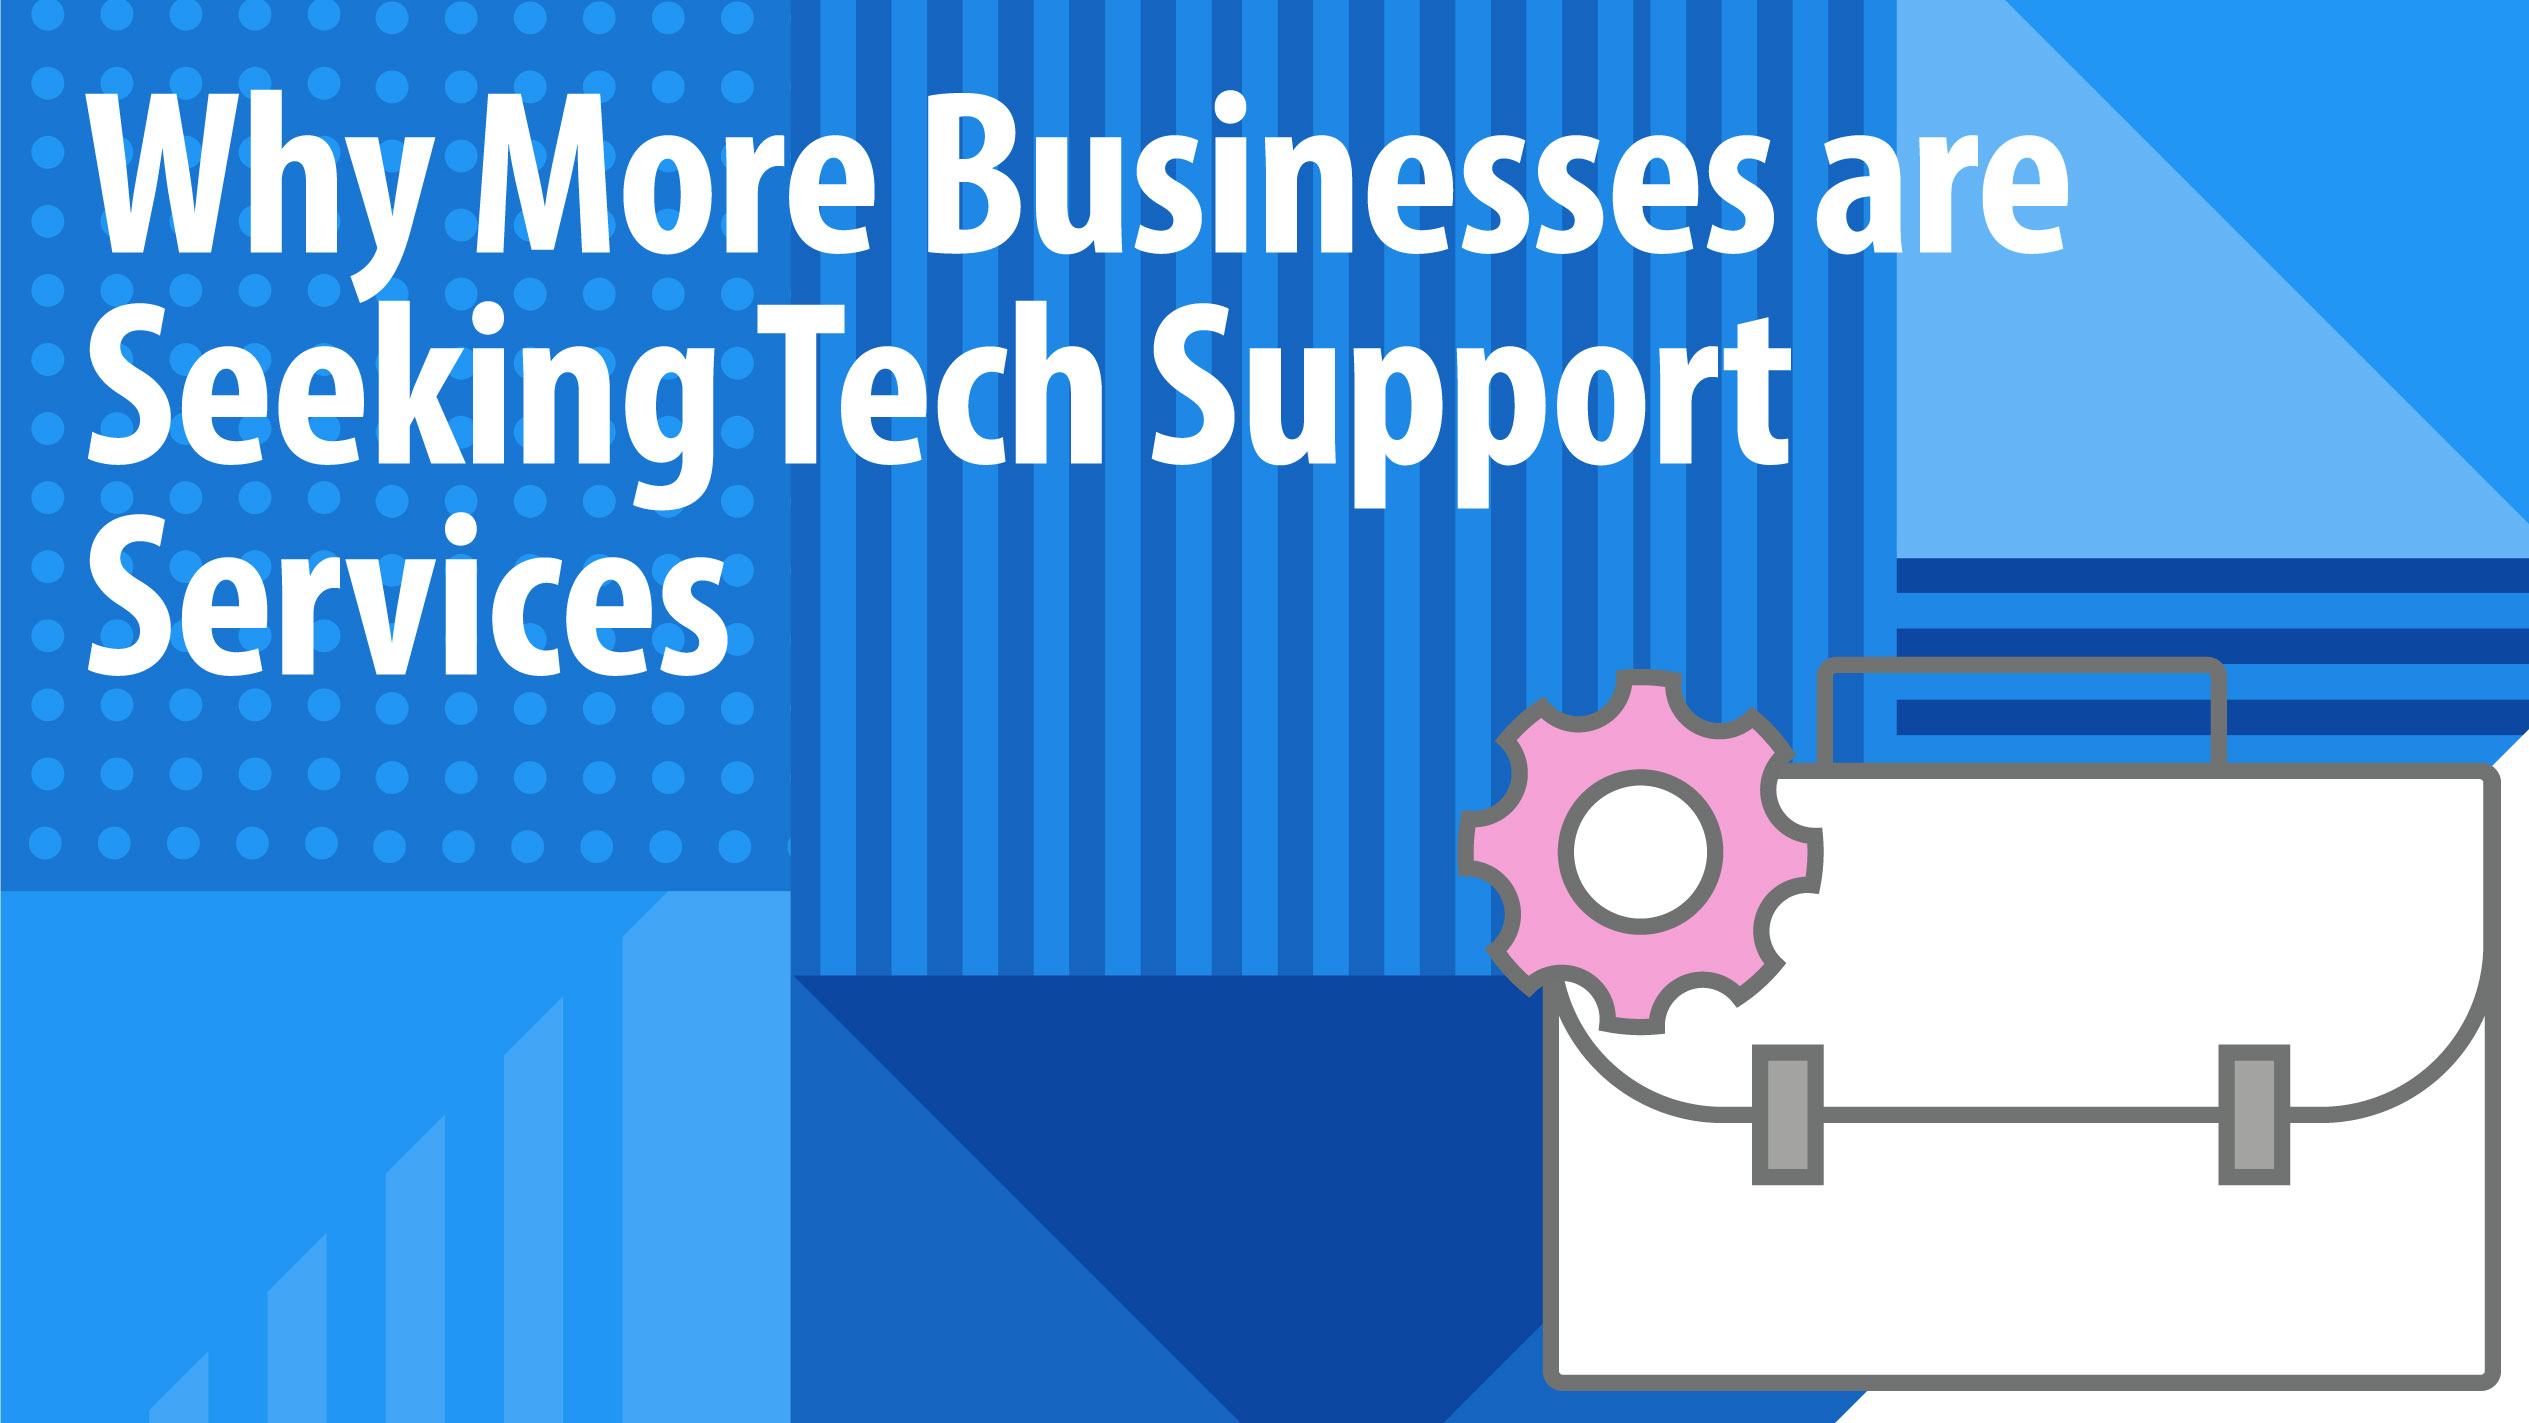 Why More Businesses are Seeking Tech Support Services